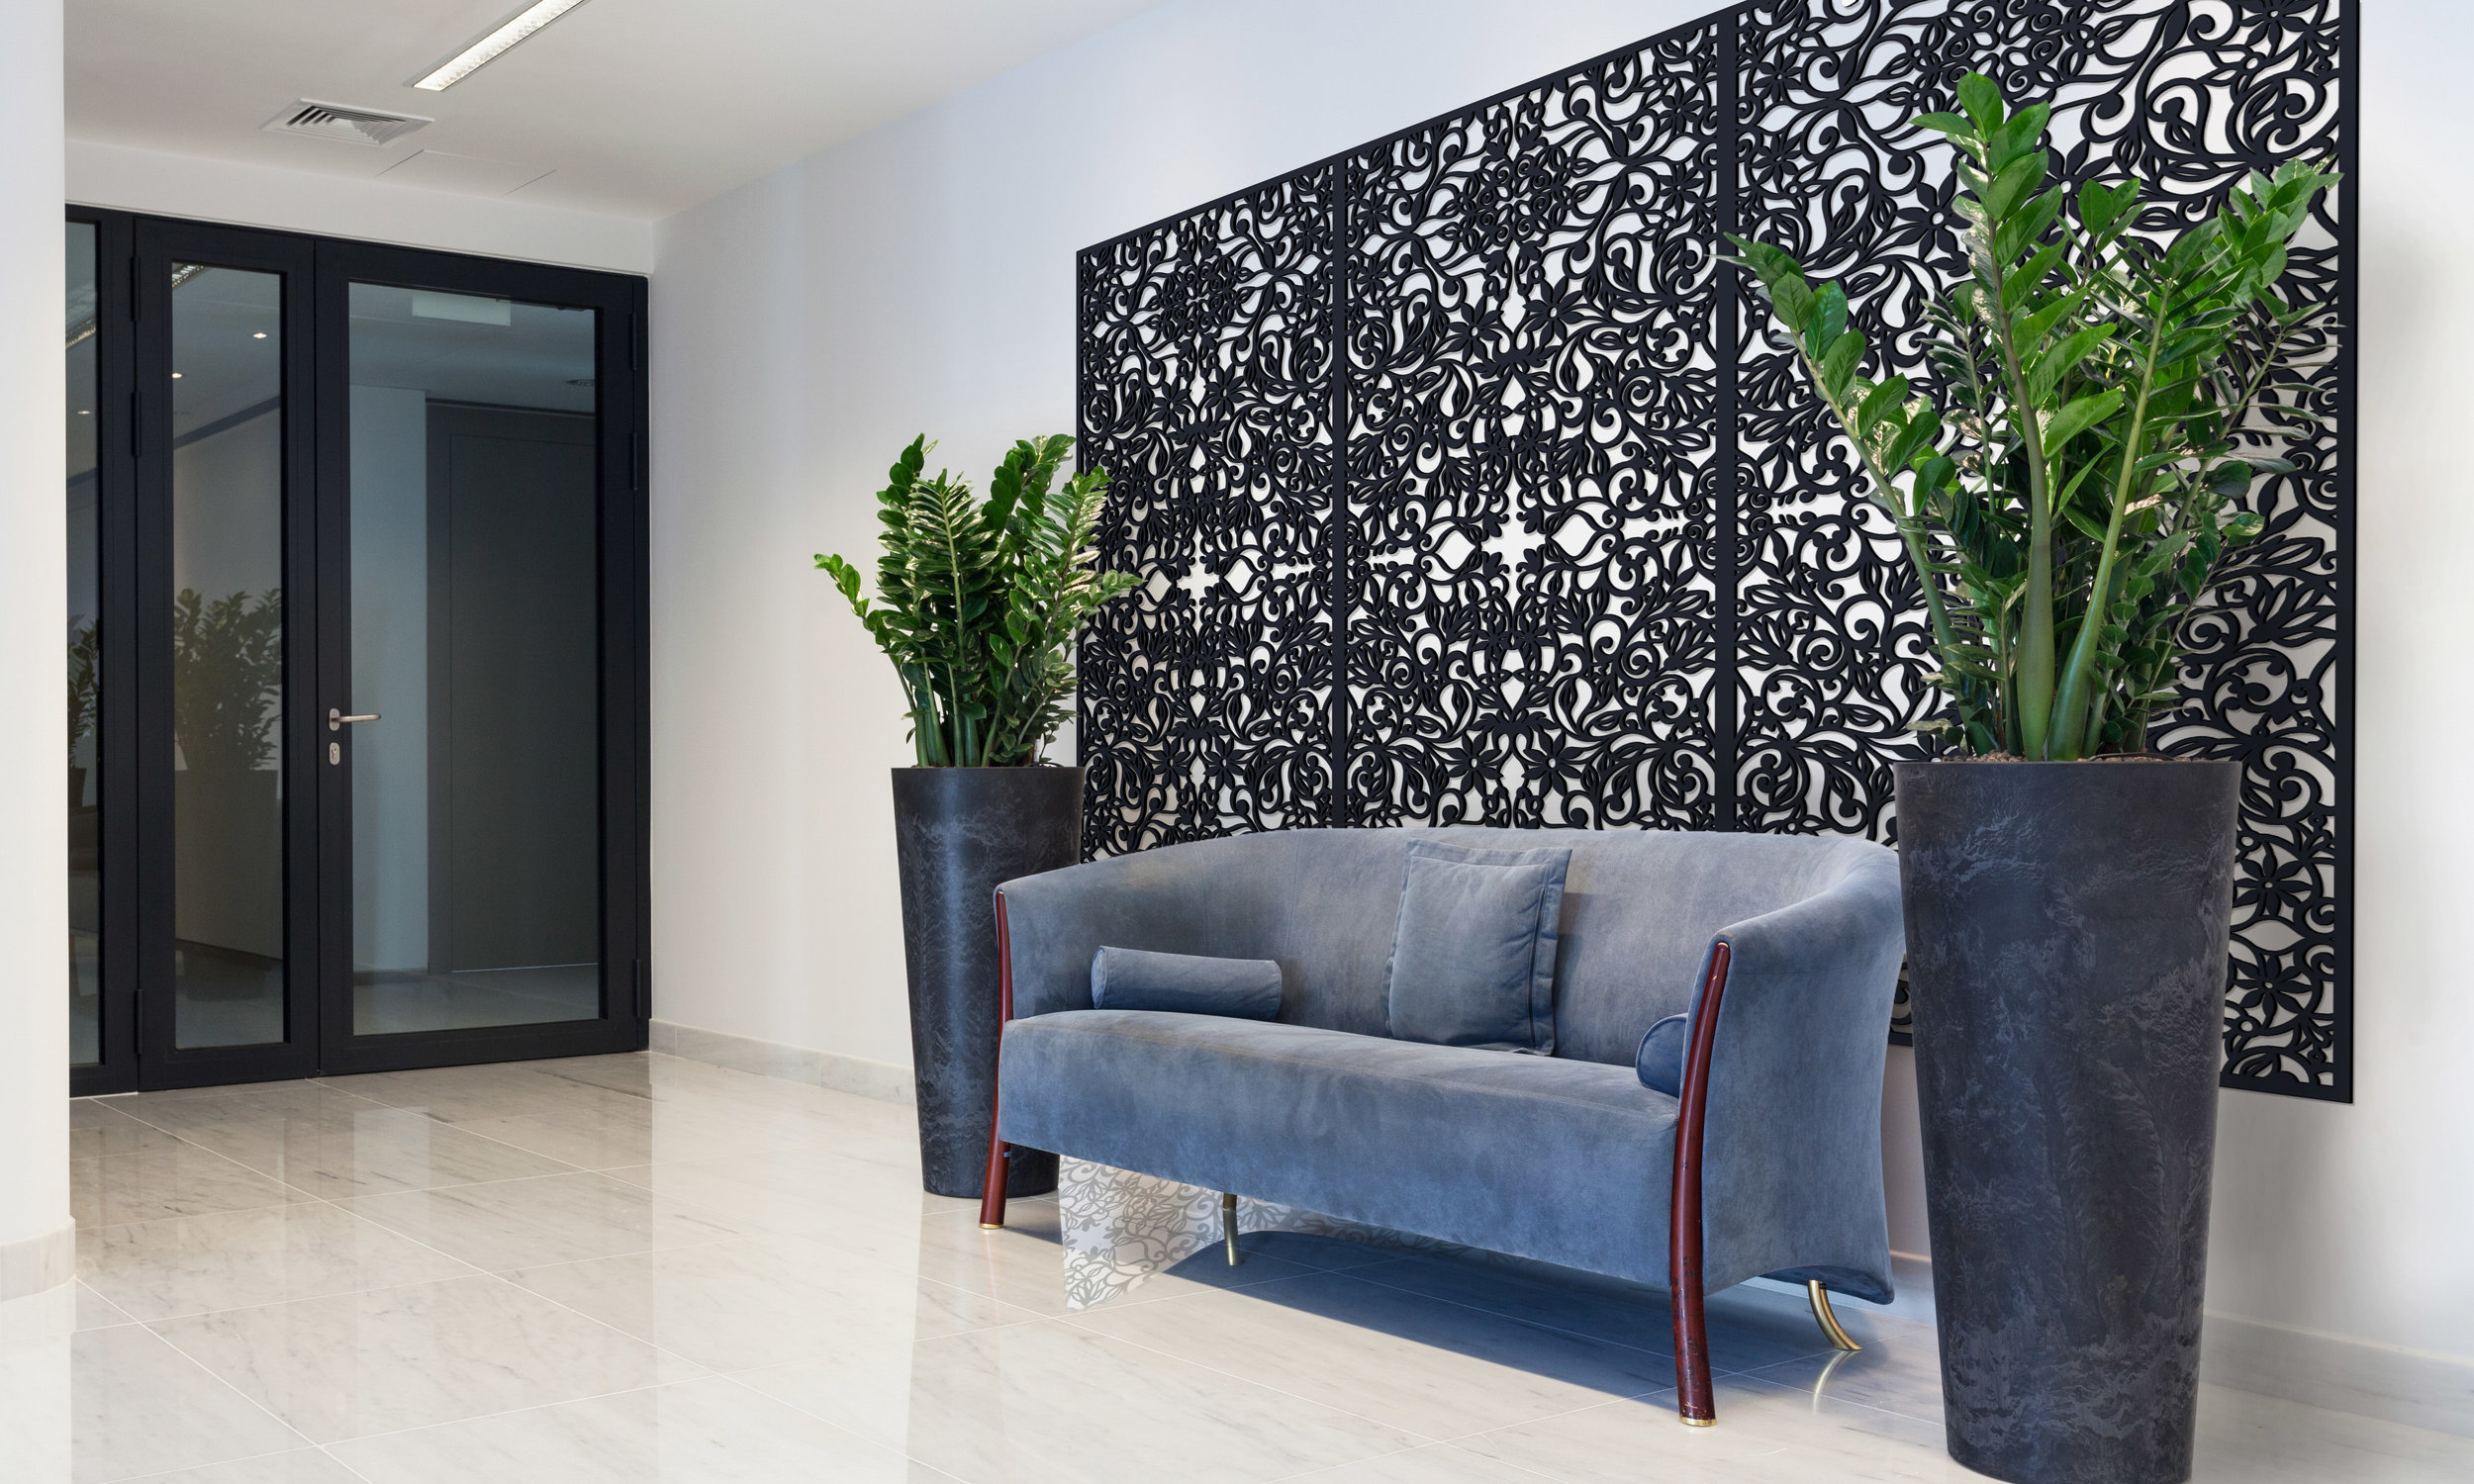 Installation Rendering B   Spring Vines decorative office wall panel - painted